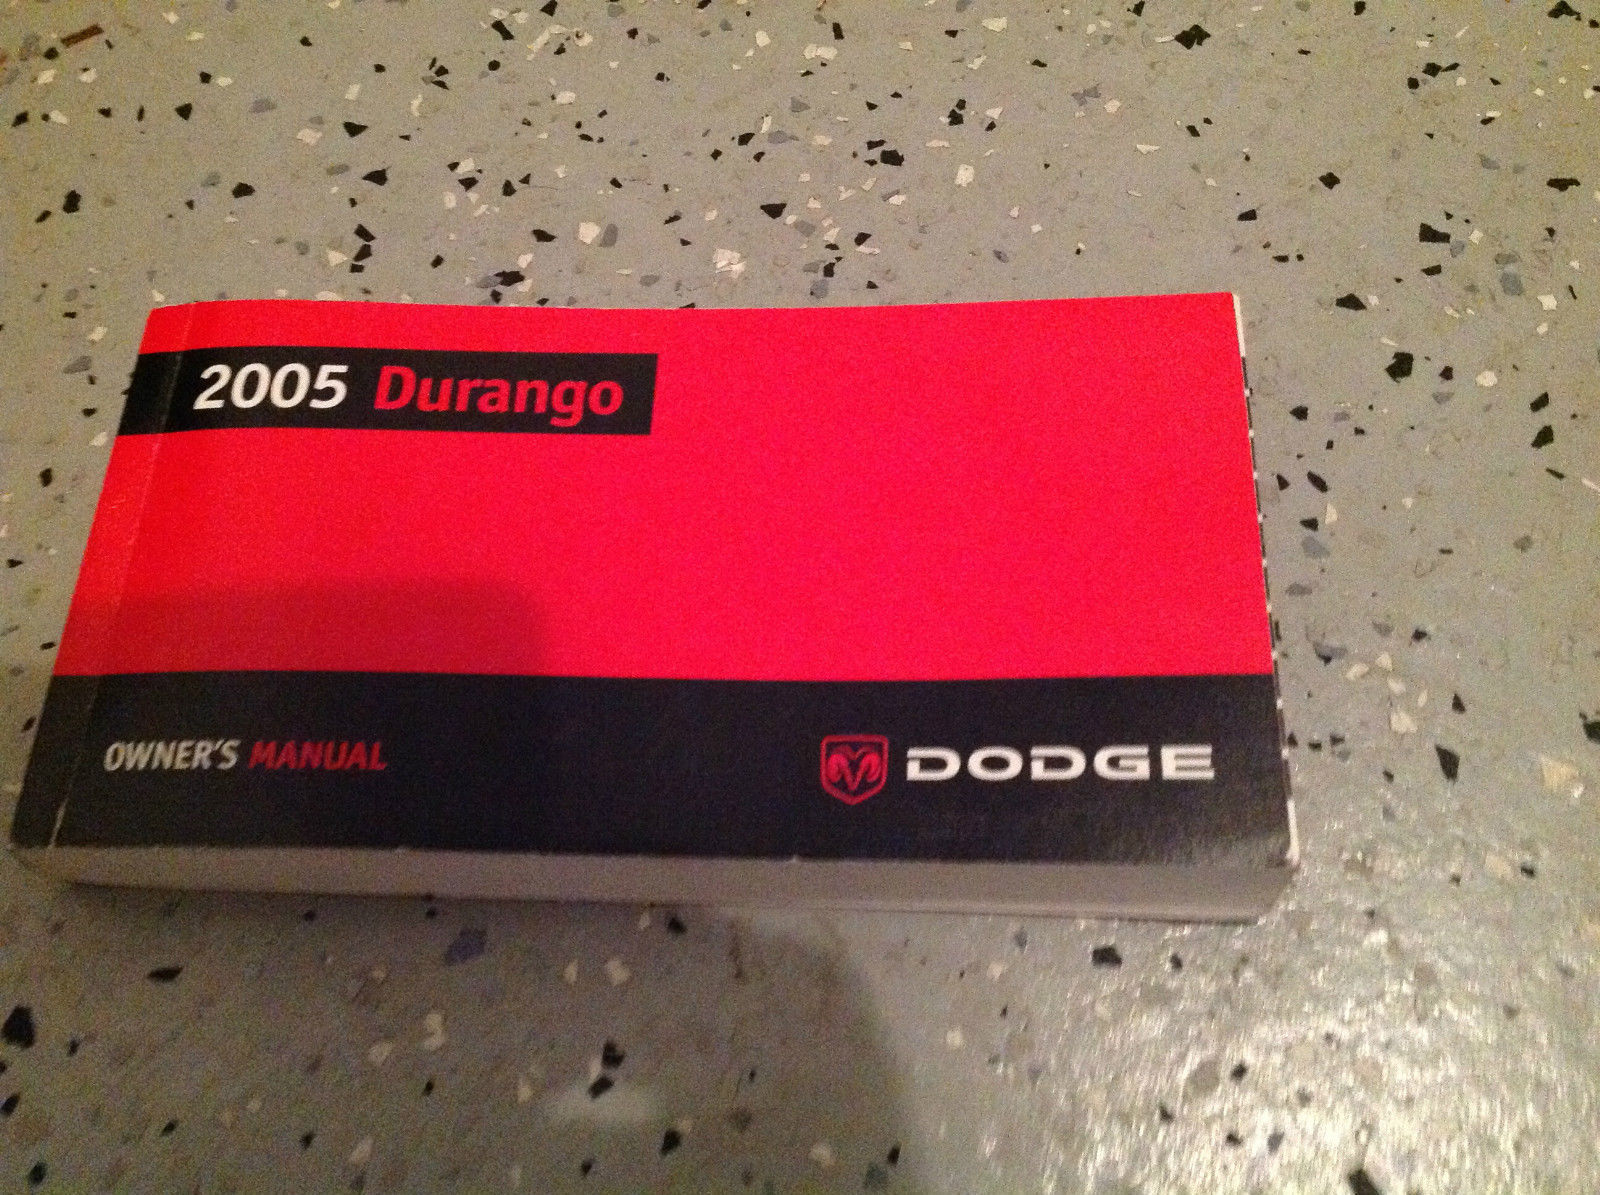 2005 DODGE DURANGO Factory Owners Manual Booklet Glove Box Mopar OEM DODGE x